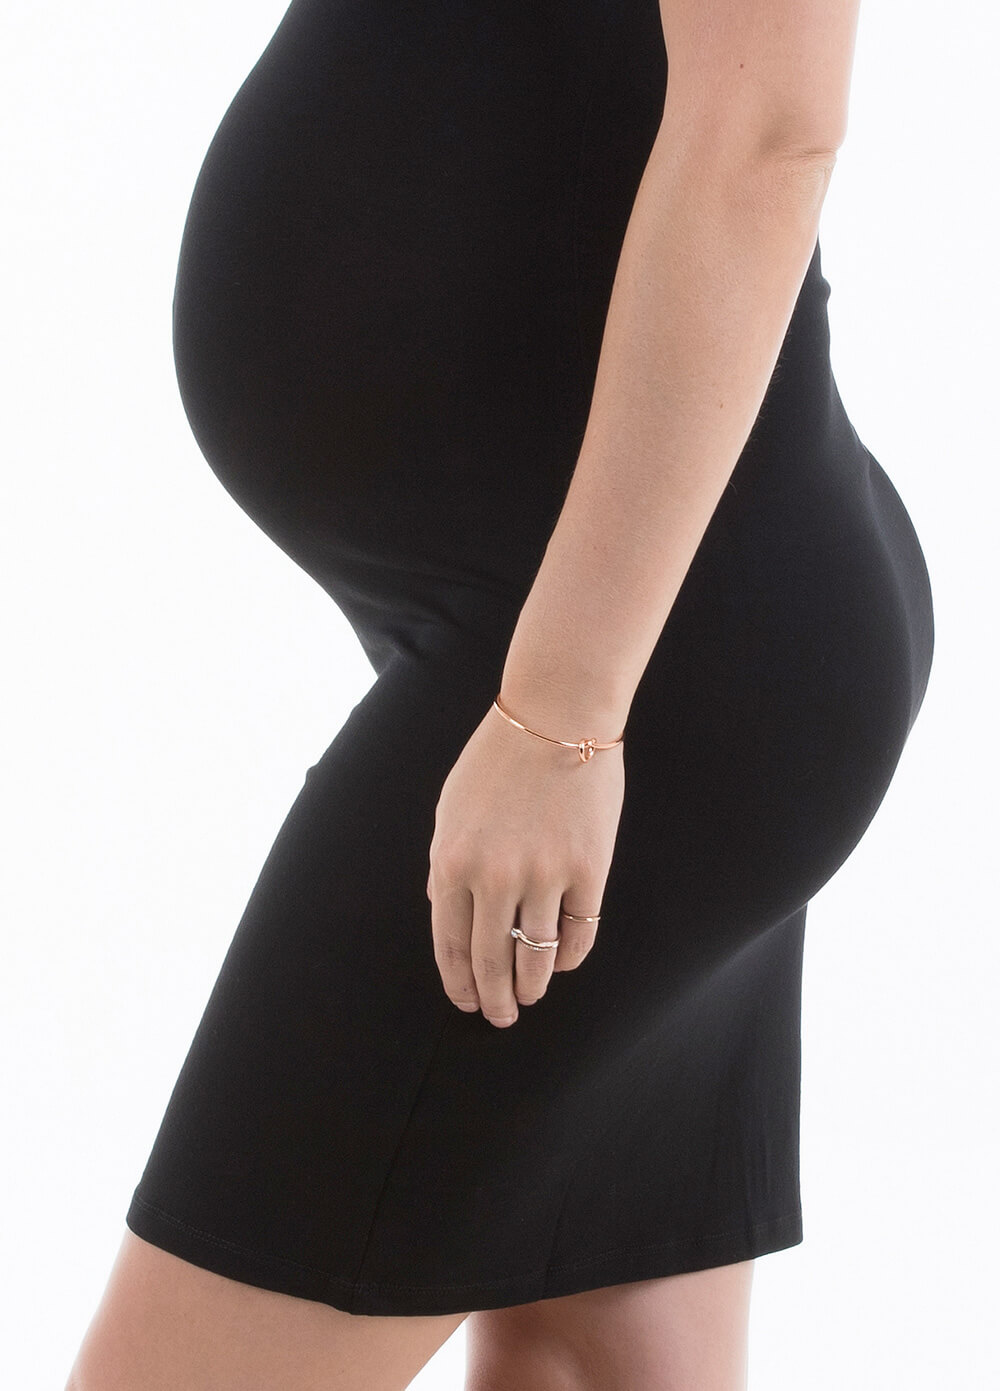 Barely There Pregnancy Slip in Black by Trimester®